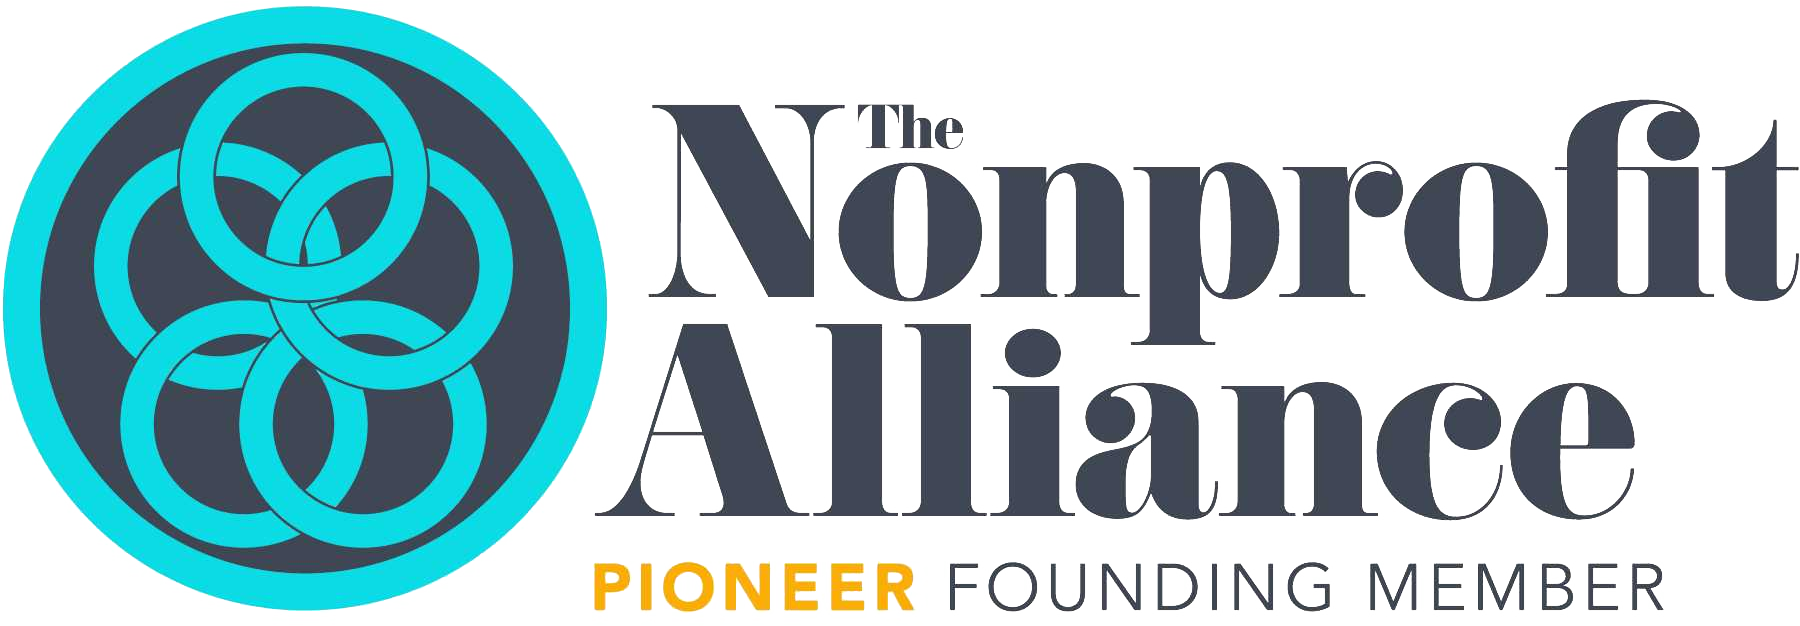 nonprofit alliance